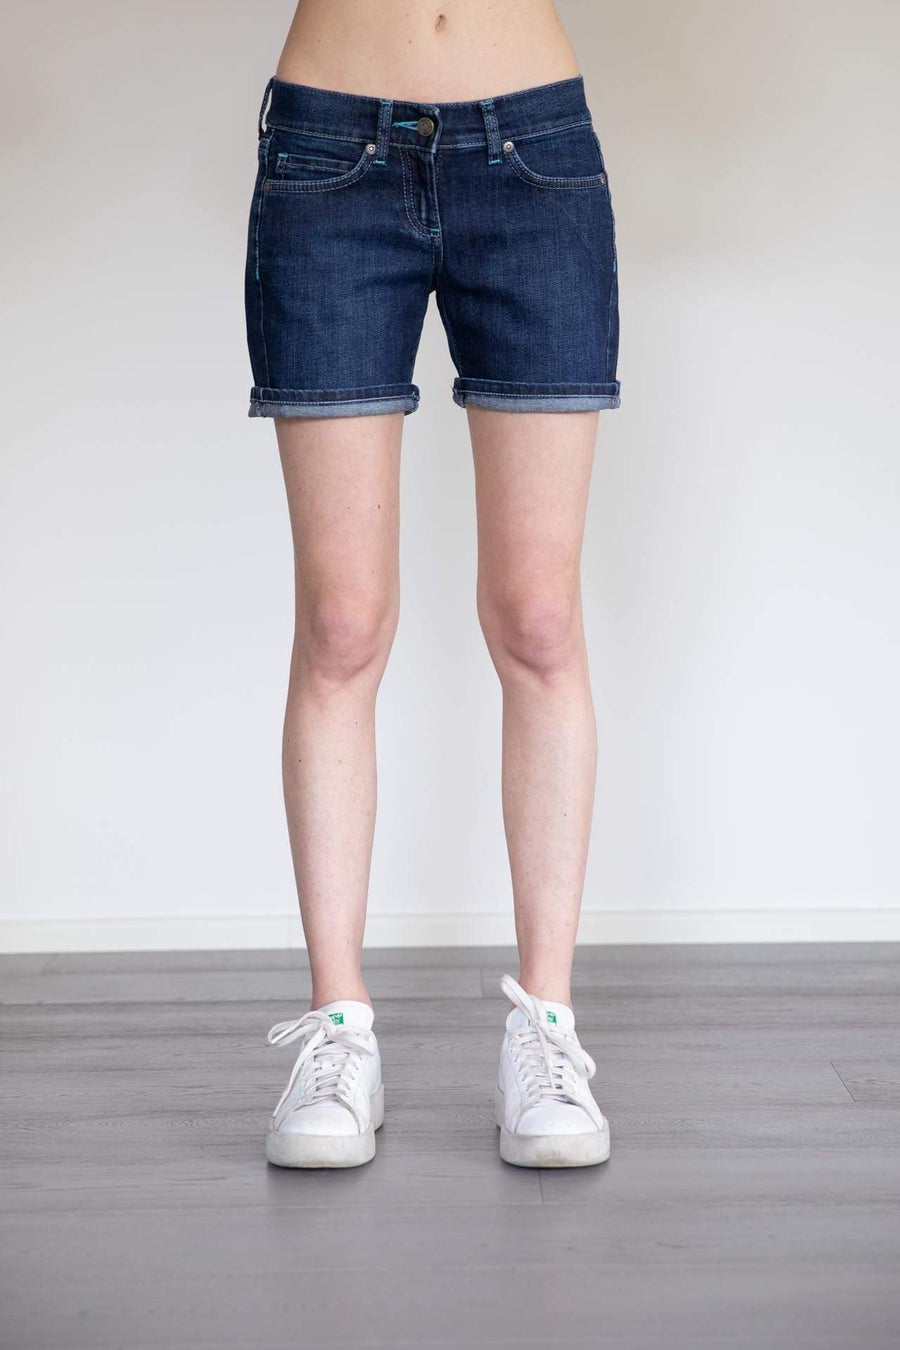 Par.co DENIM Woman Short Woman bærekraftig moteetisk mote